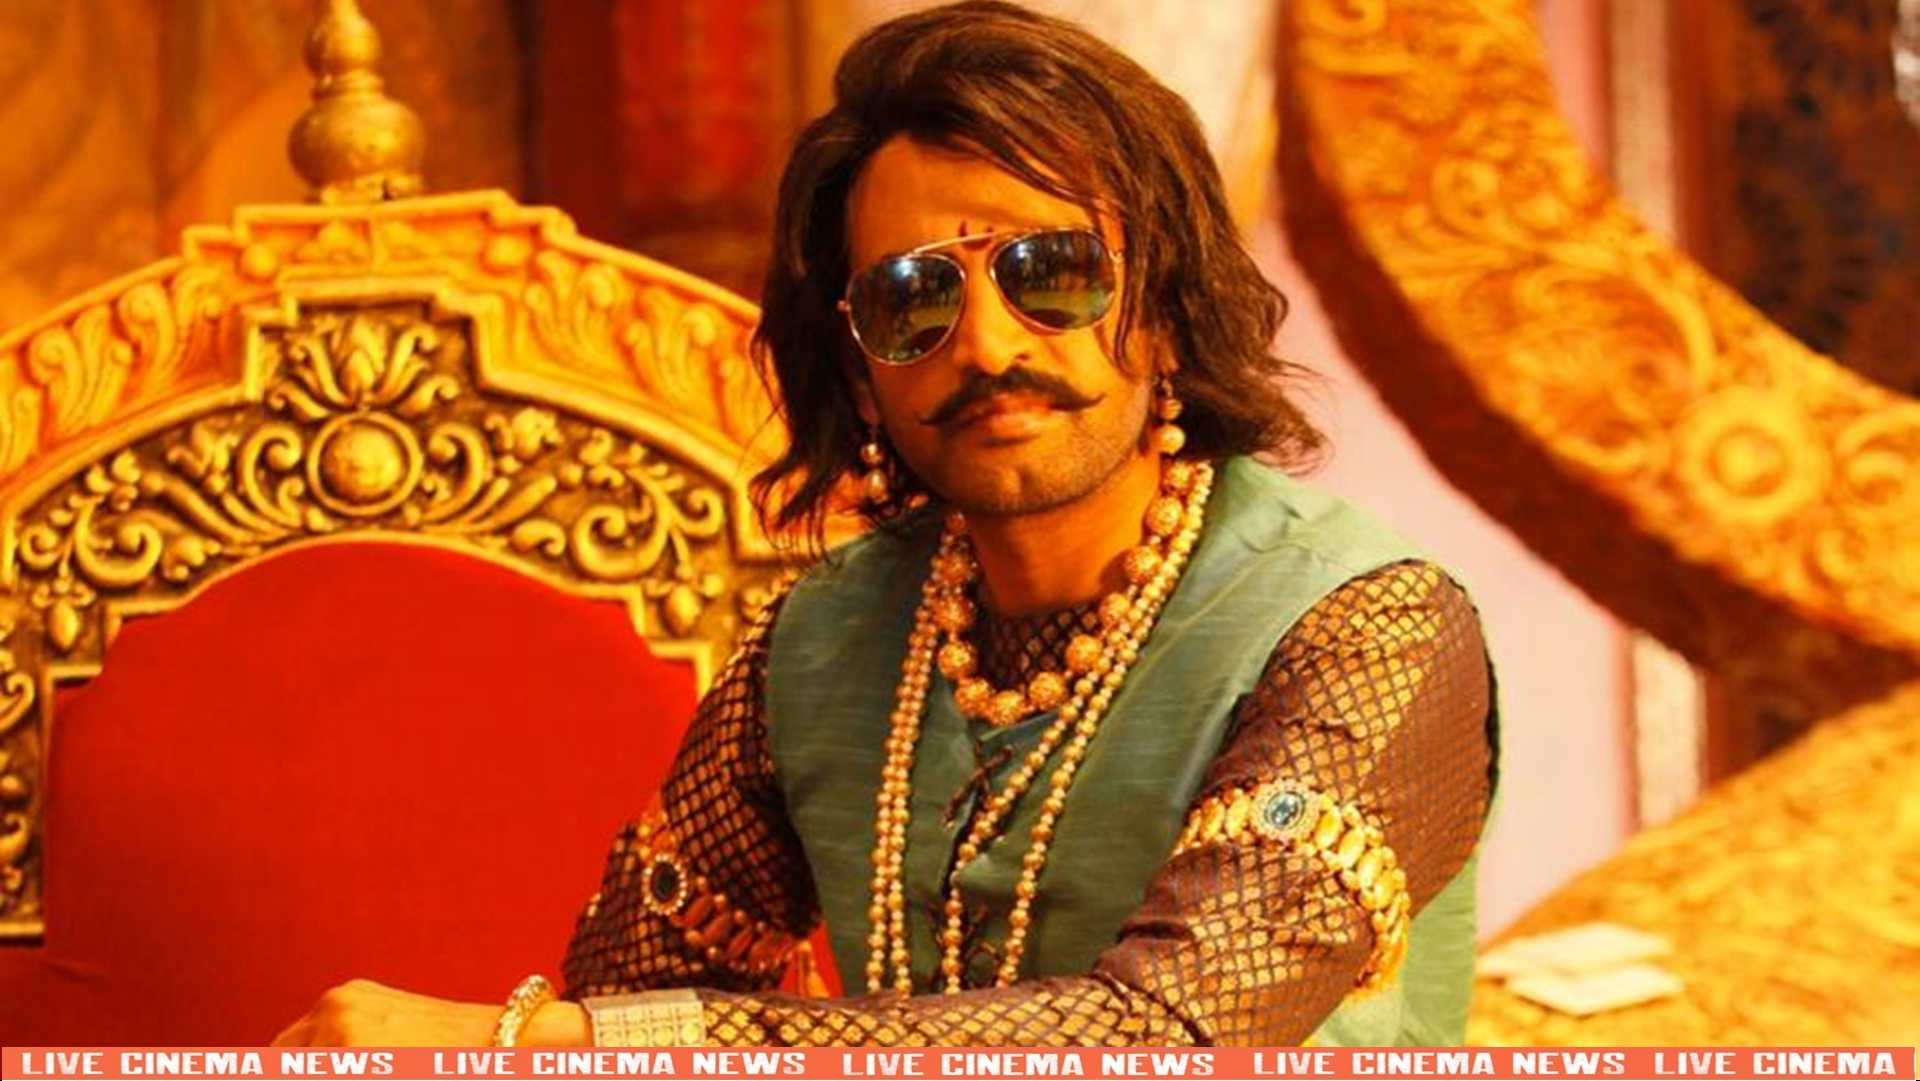 Santhanam in the role of king